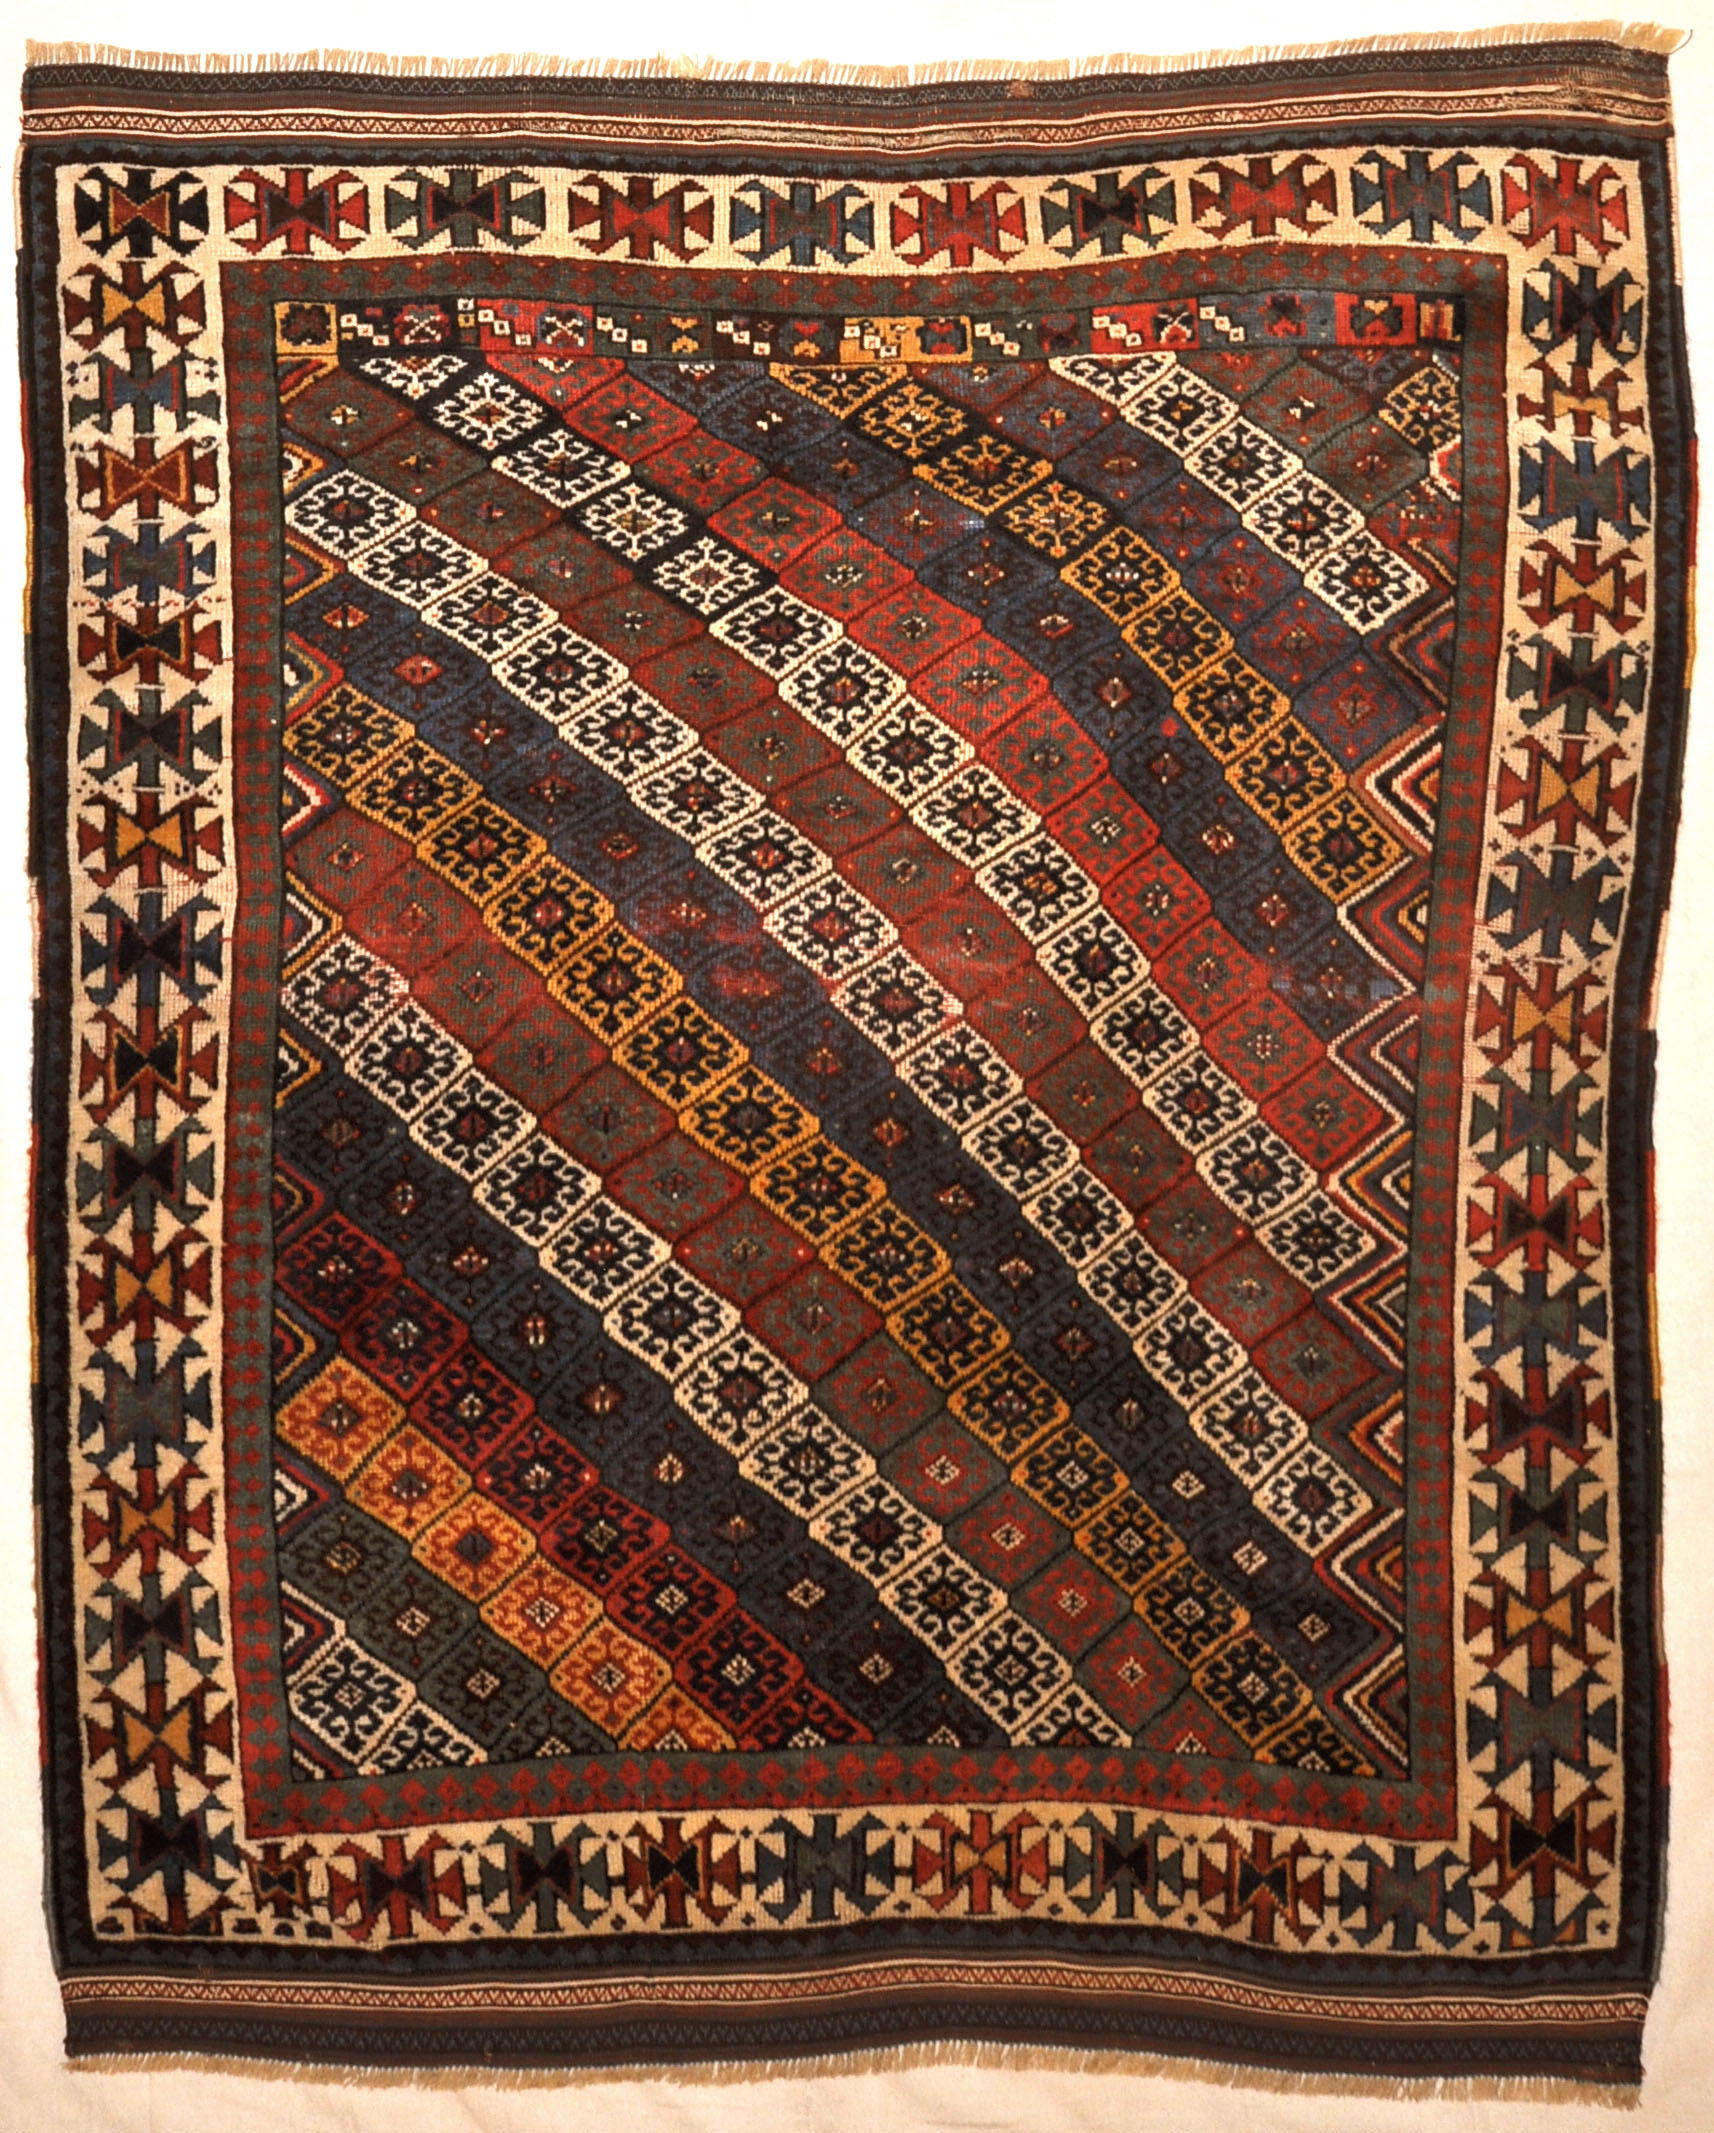 Unique Rare Jaf Kurd Rug Circa 1860s. A piece of genuine authentic woven carpet art sold by the Santa Barbara Design Center, Rugs and More.